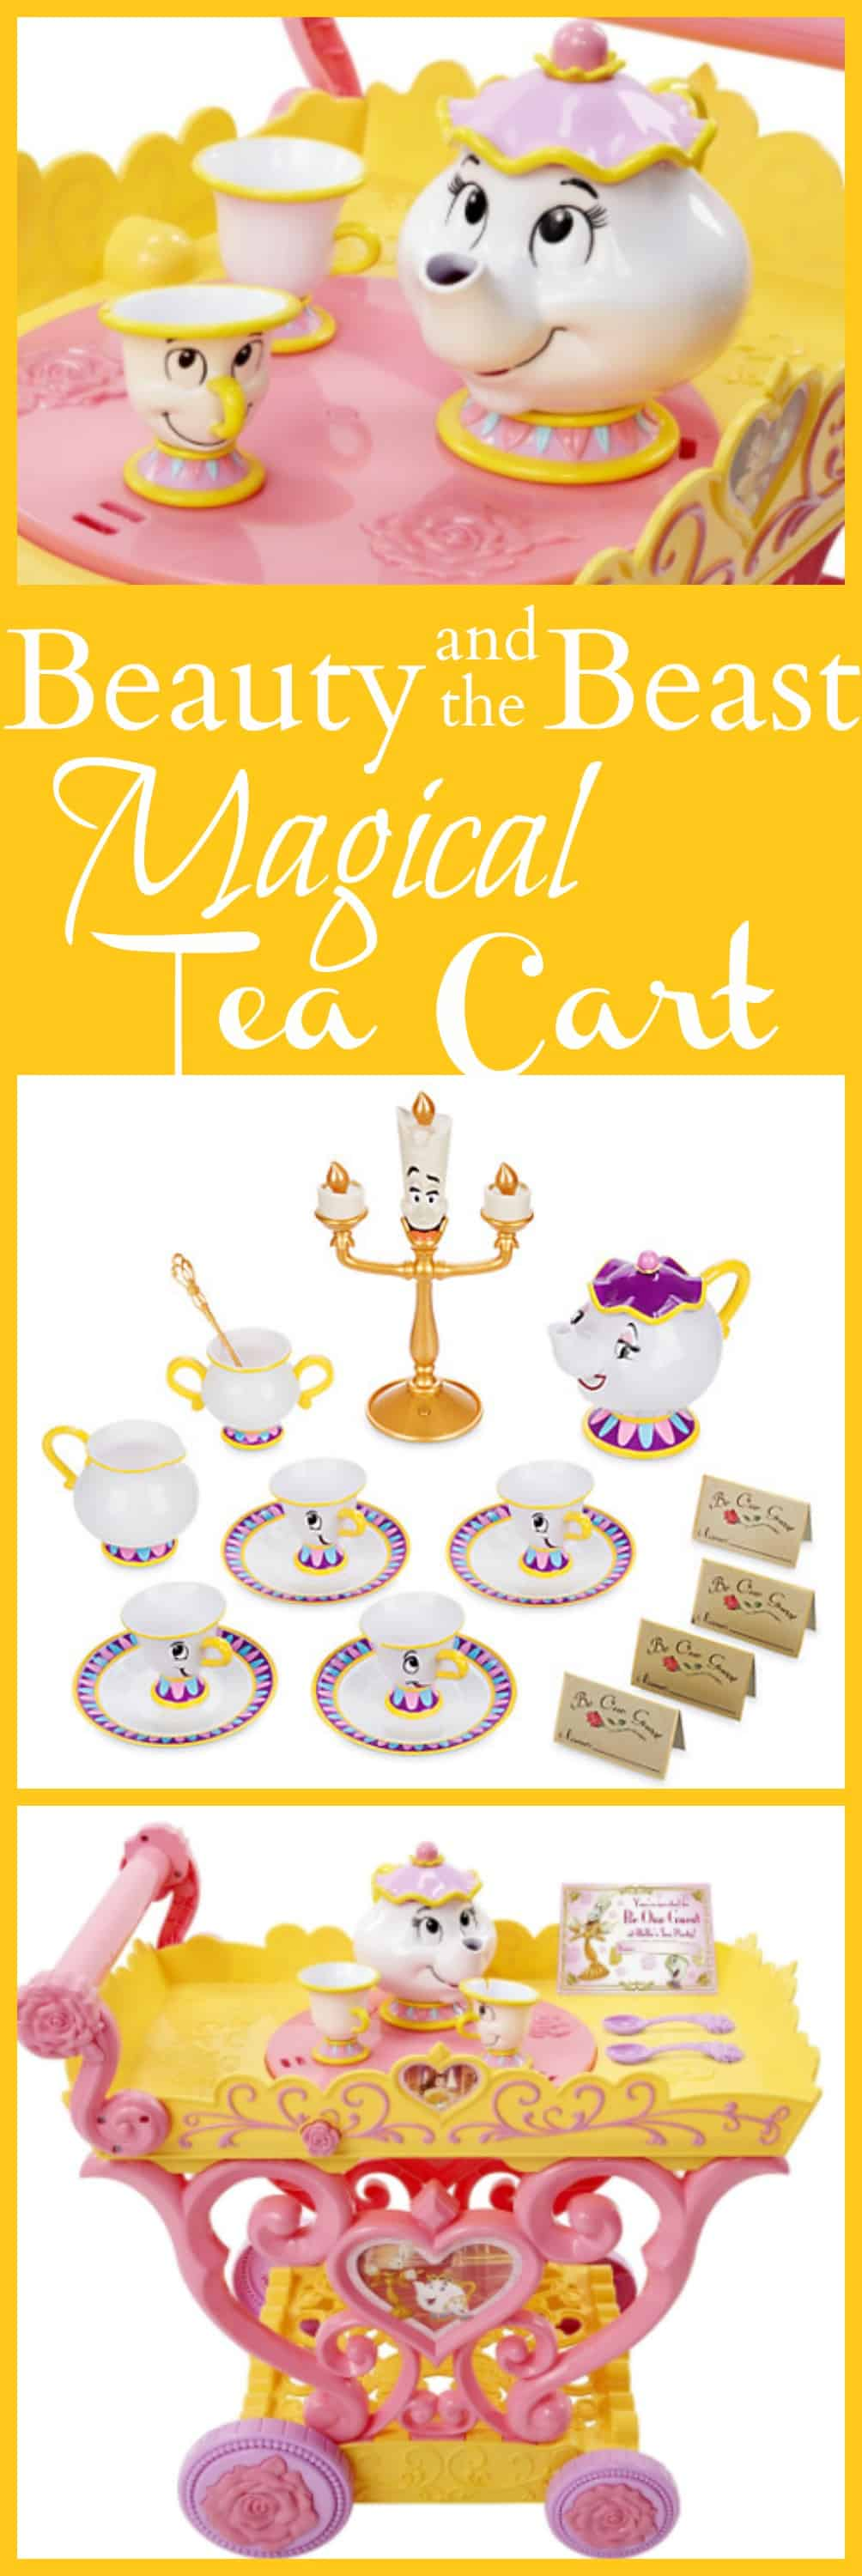 vDisney Beauty and the Beast Magical Tea Cart